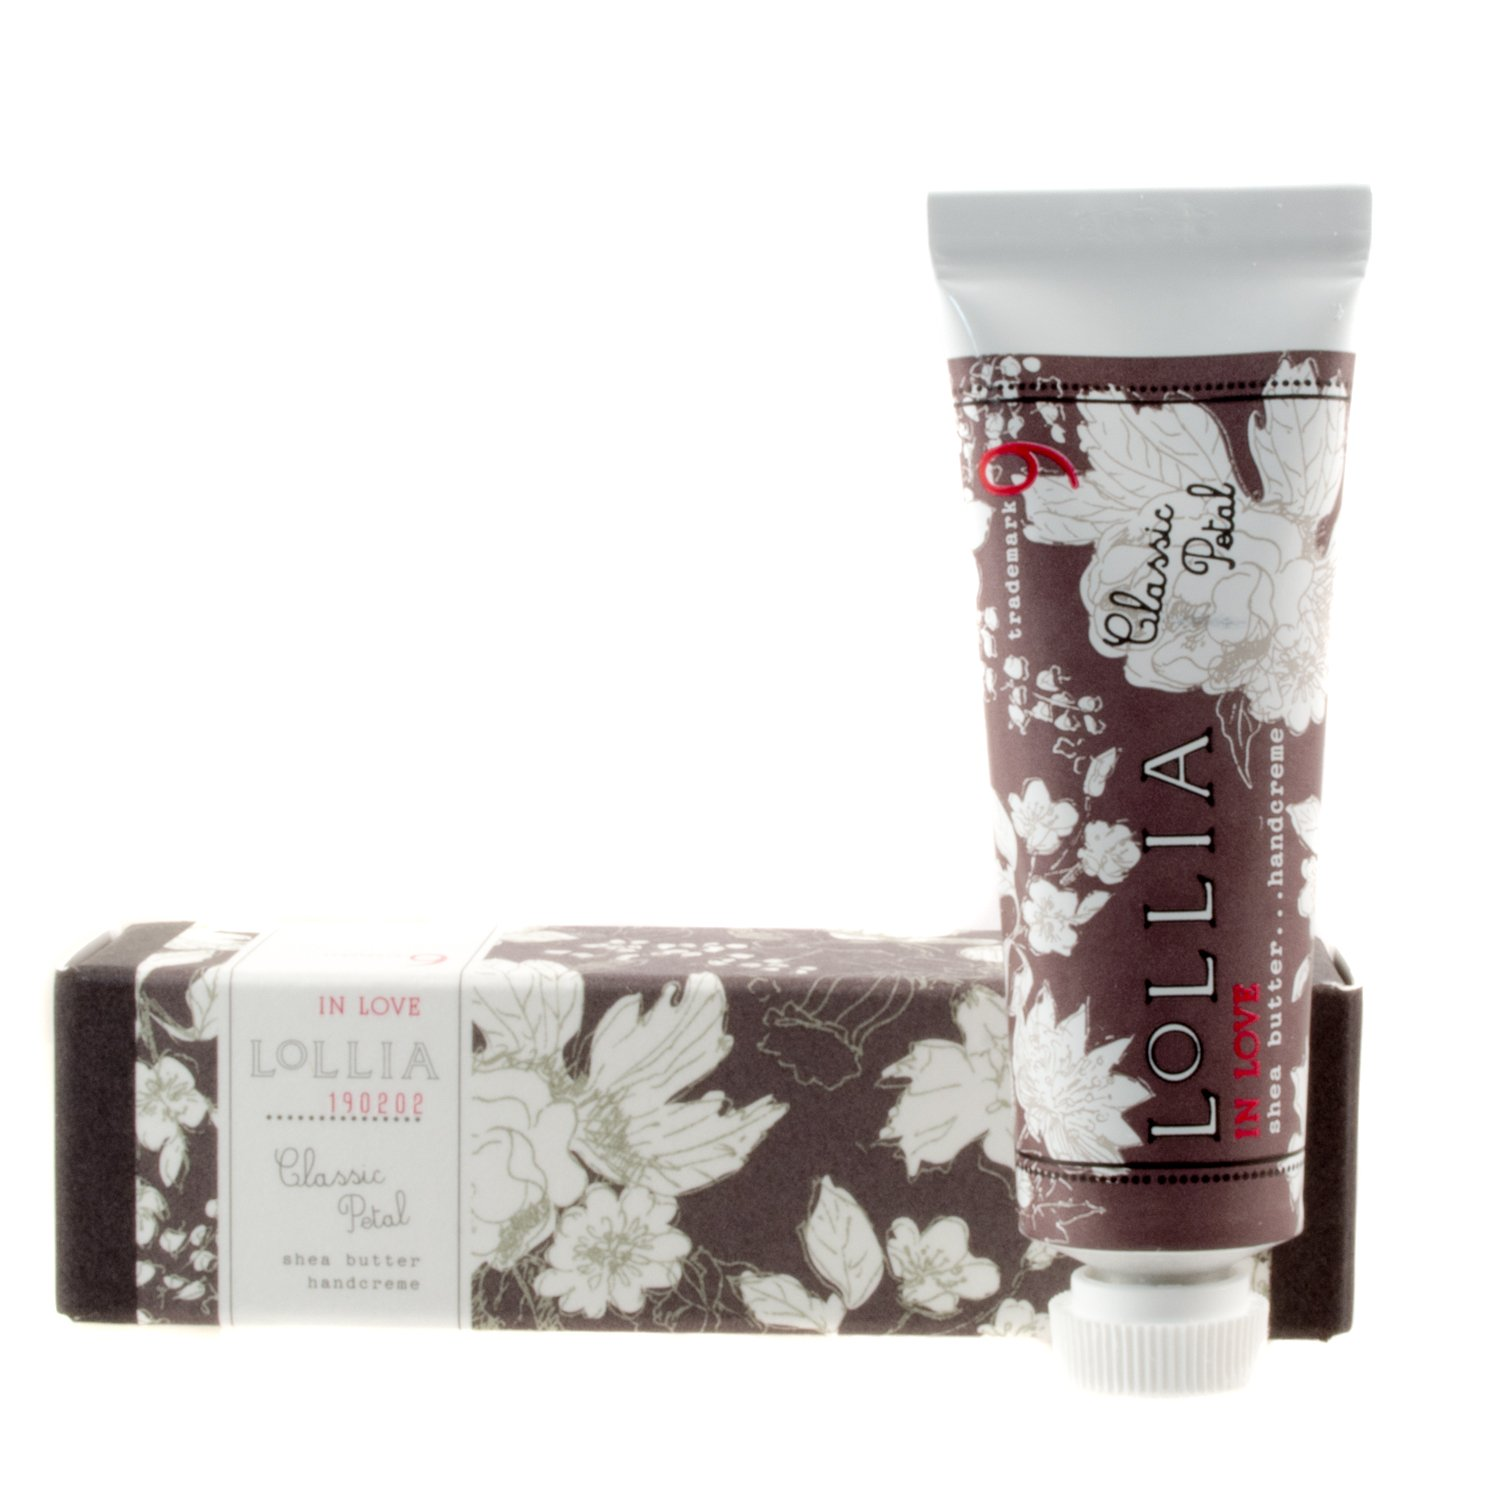 Lollia In Love Petite Treat Handcreme-0.33 oz.